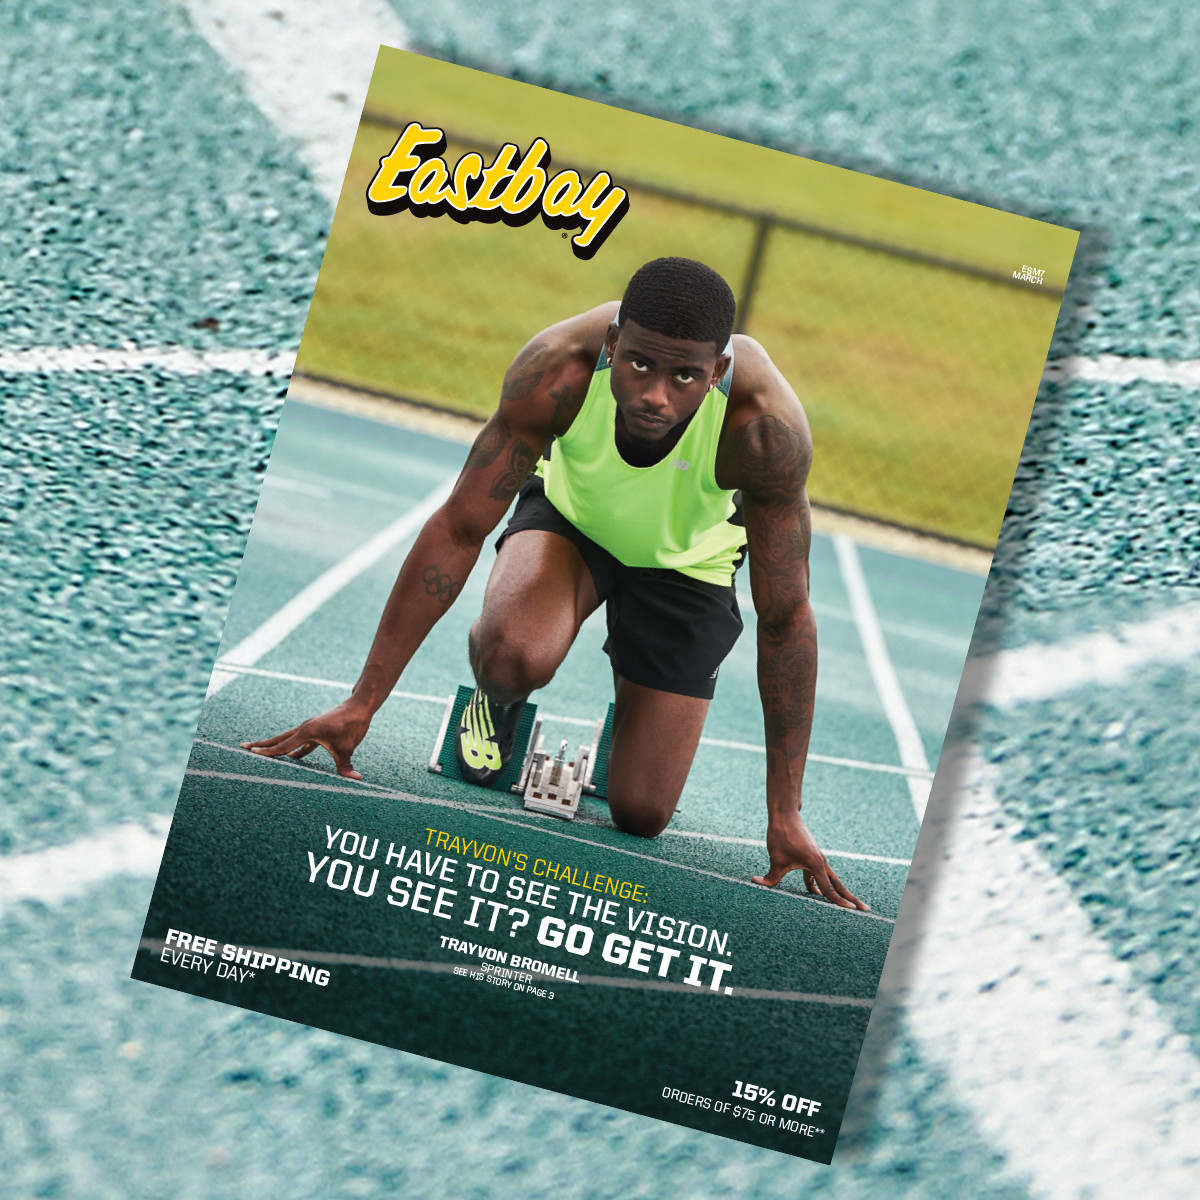 Trayvon Bromell: See The Vision